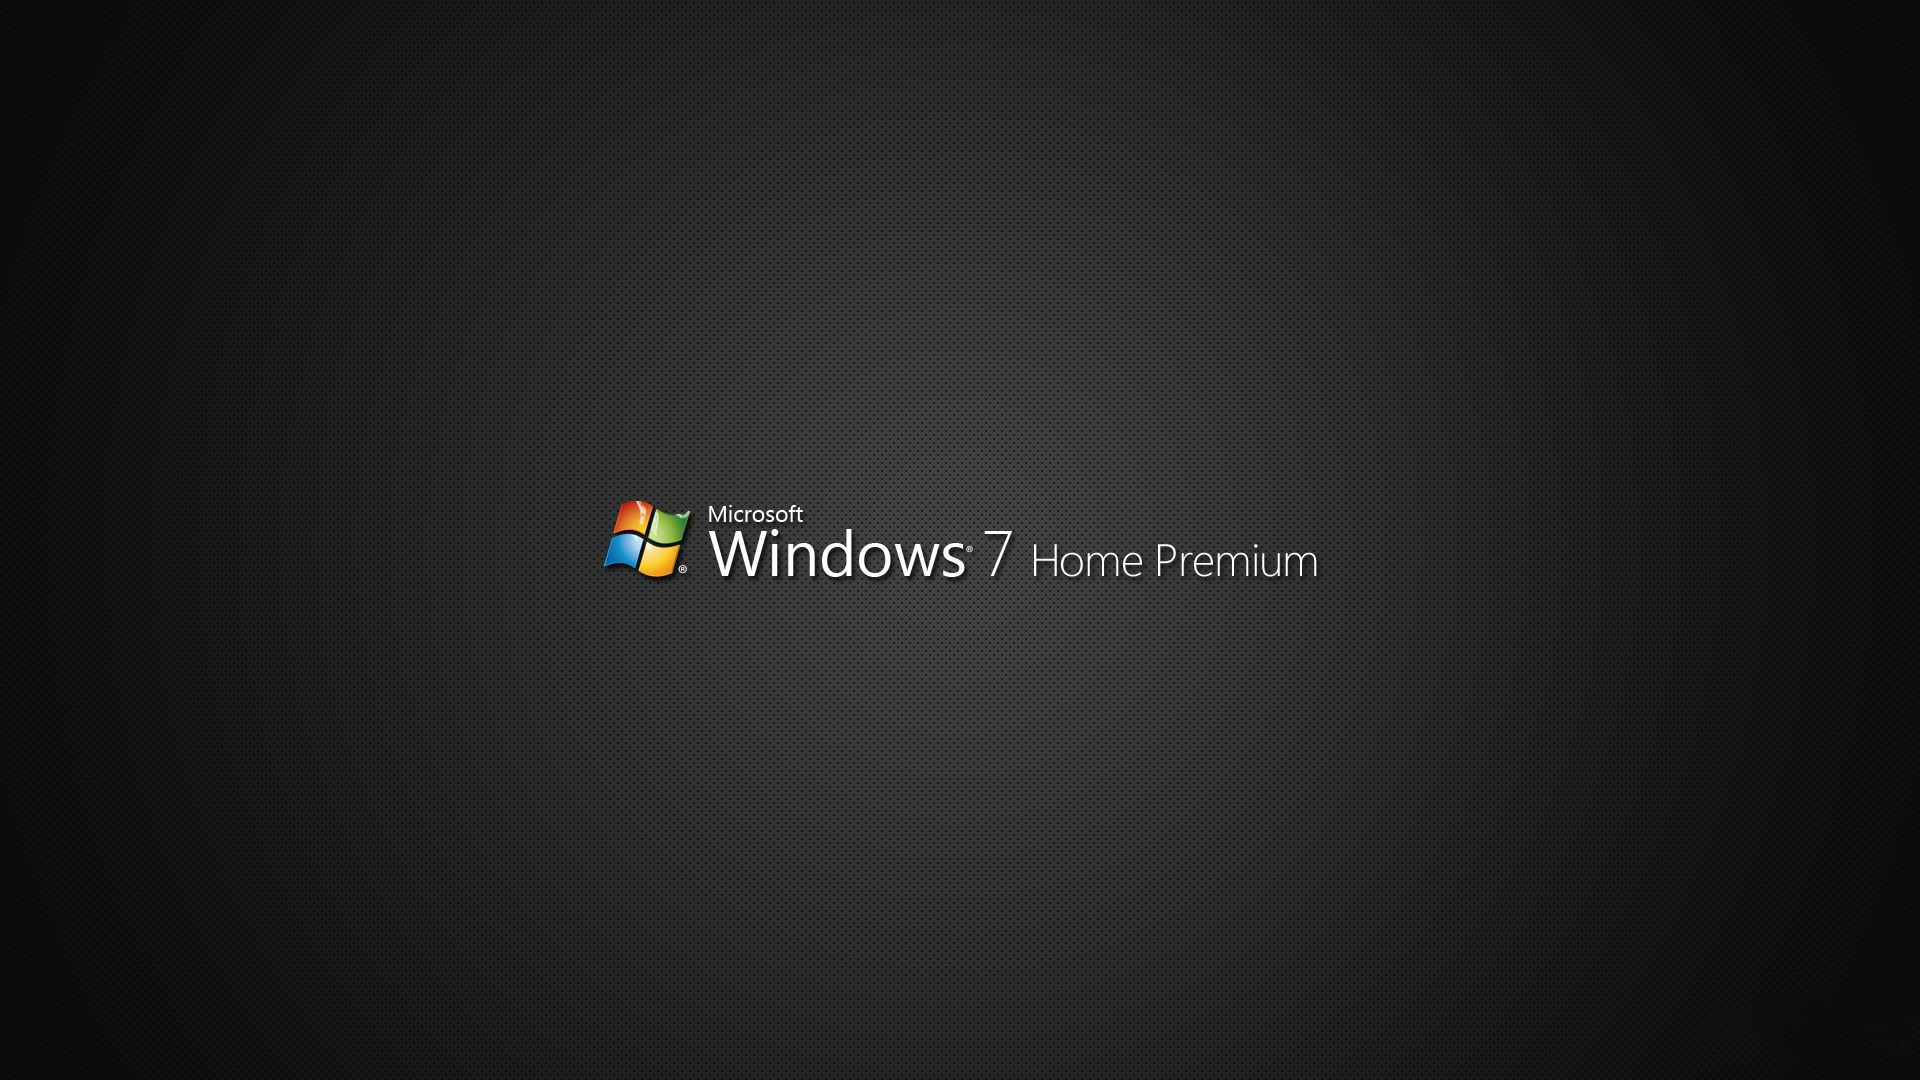 Windows 7 Home Premium Hd Wallpapers0 Black Wallpaper Iphone Wallpaper Maker Wallpaper